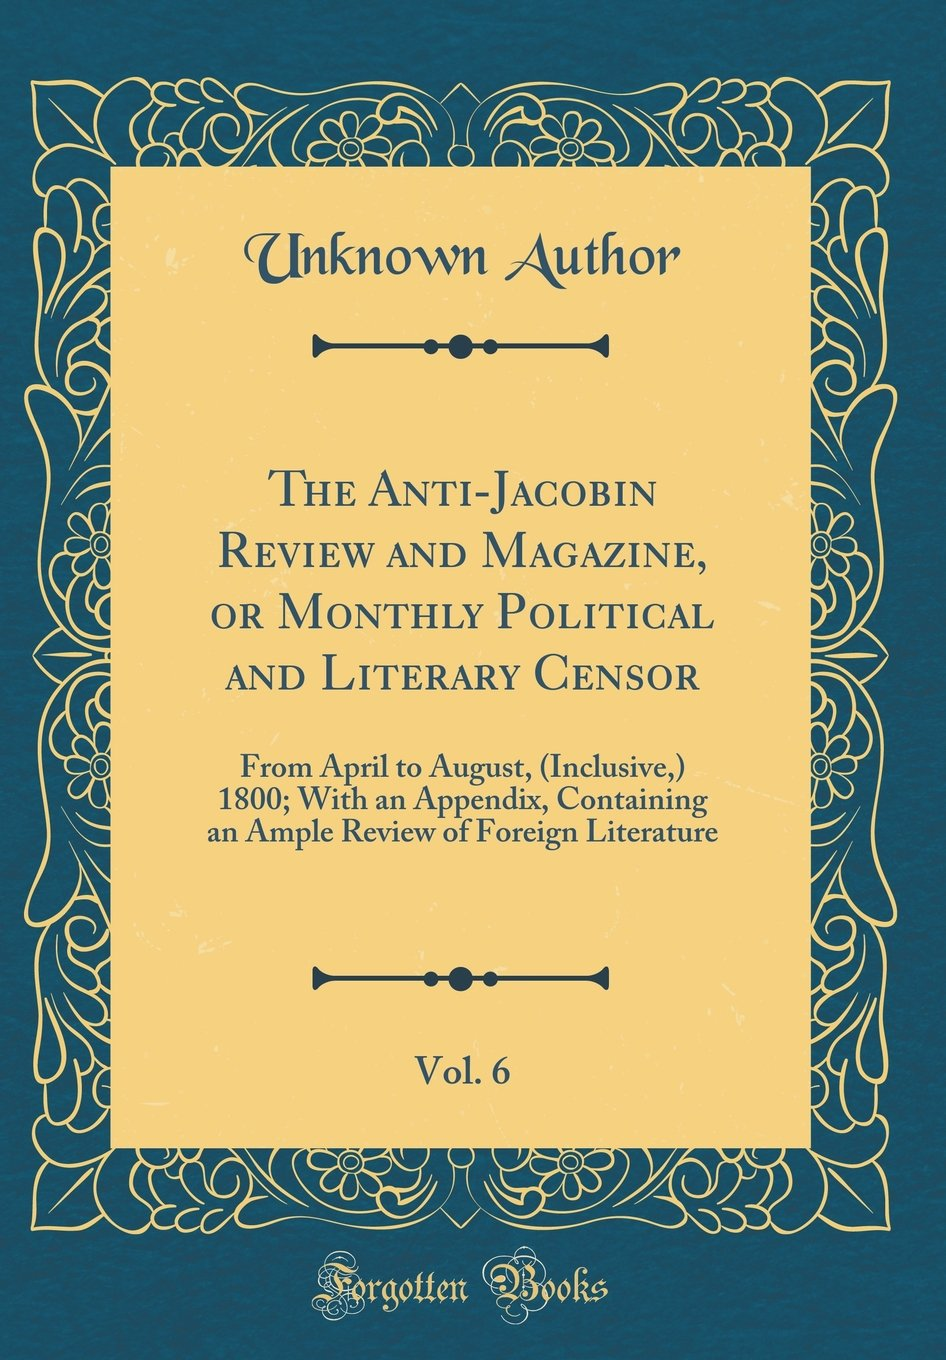 The Anti-Jacobin Review and Magazine, or Monthly Political and Literary Censor, Vol. 6: From April to August, (Inclusive, ) 1800; With an Appendix, ... of Foreign Literature (Classic Reprint) PDF